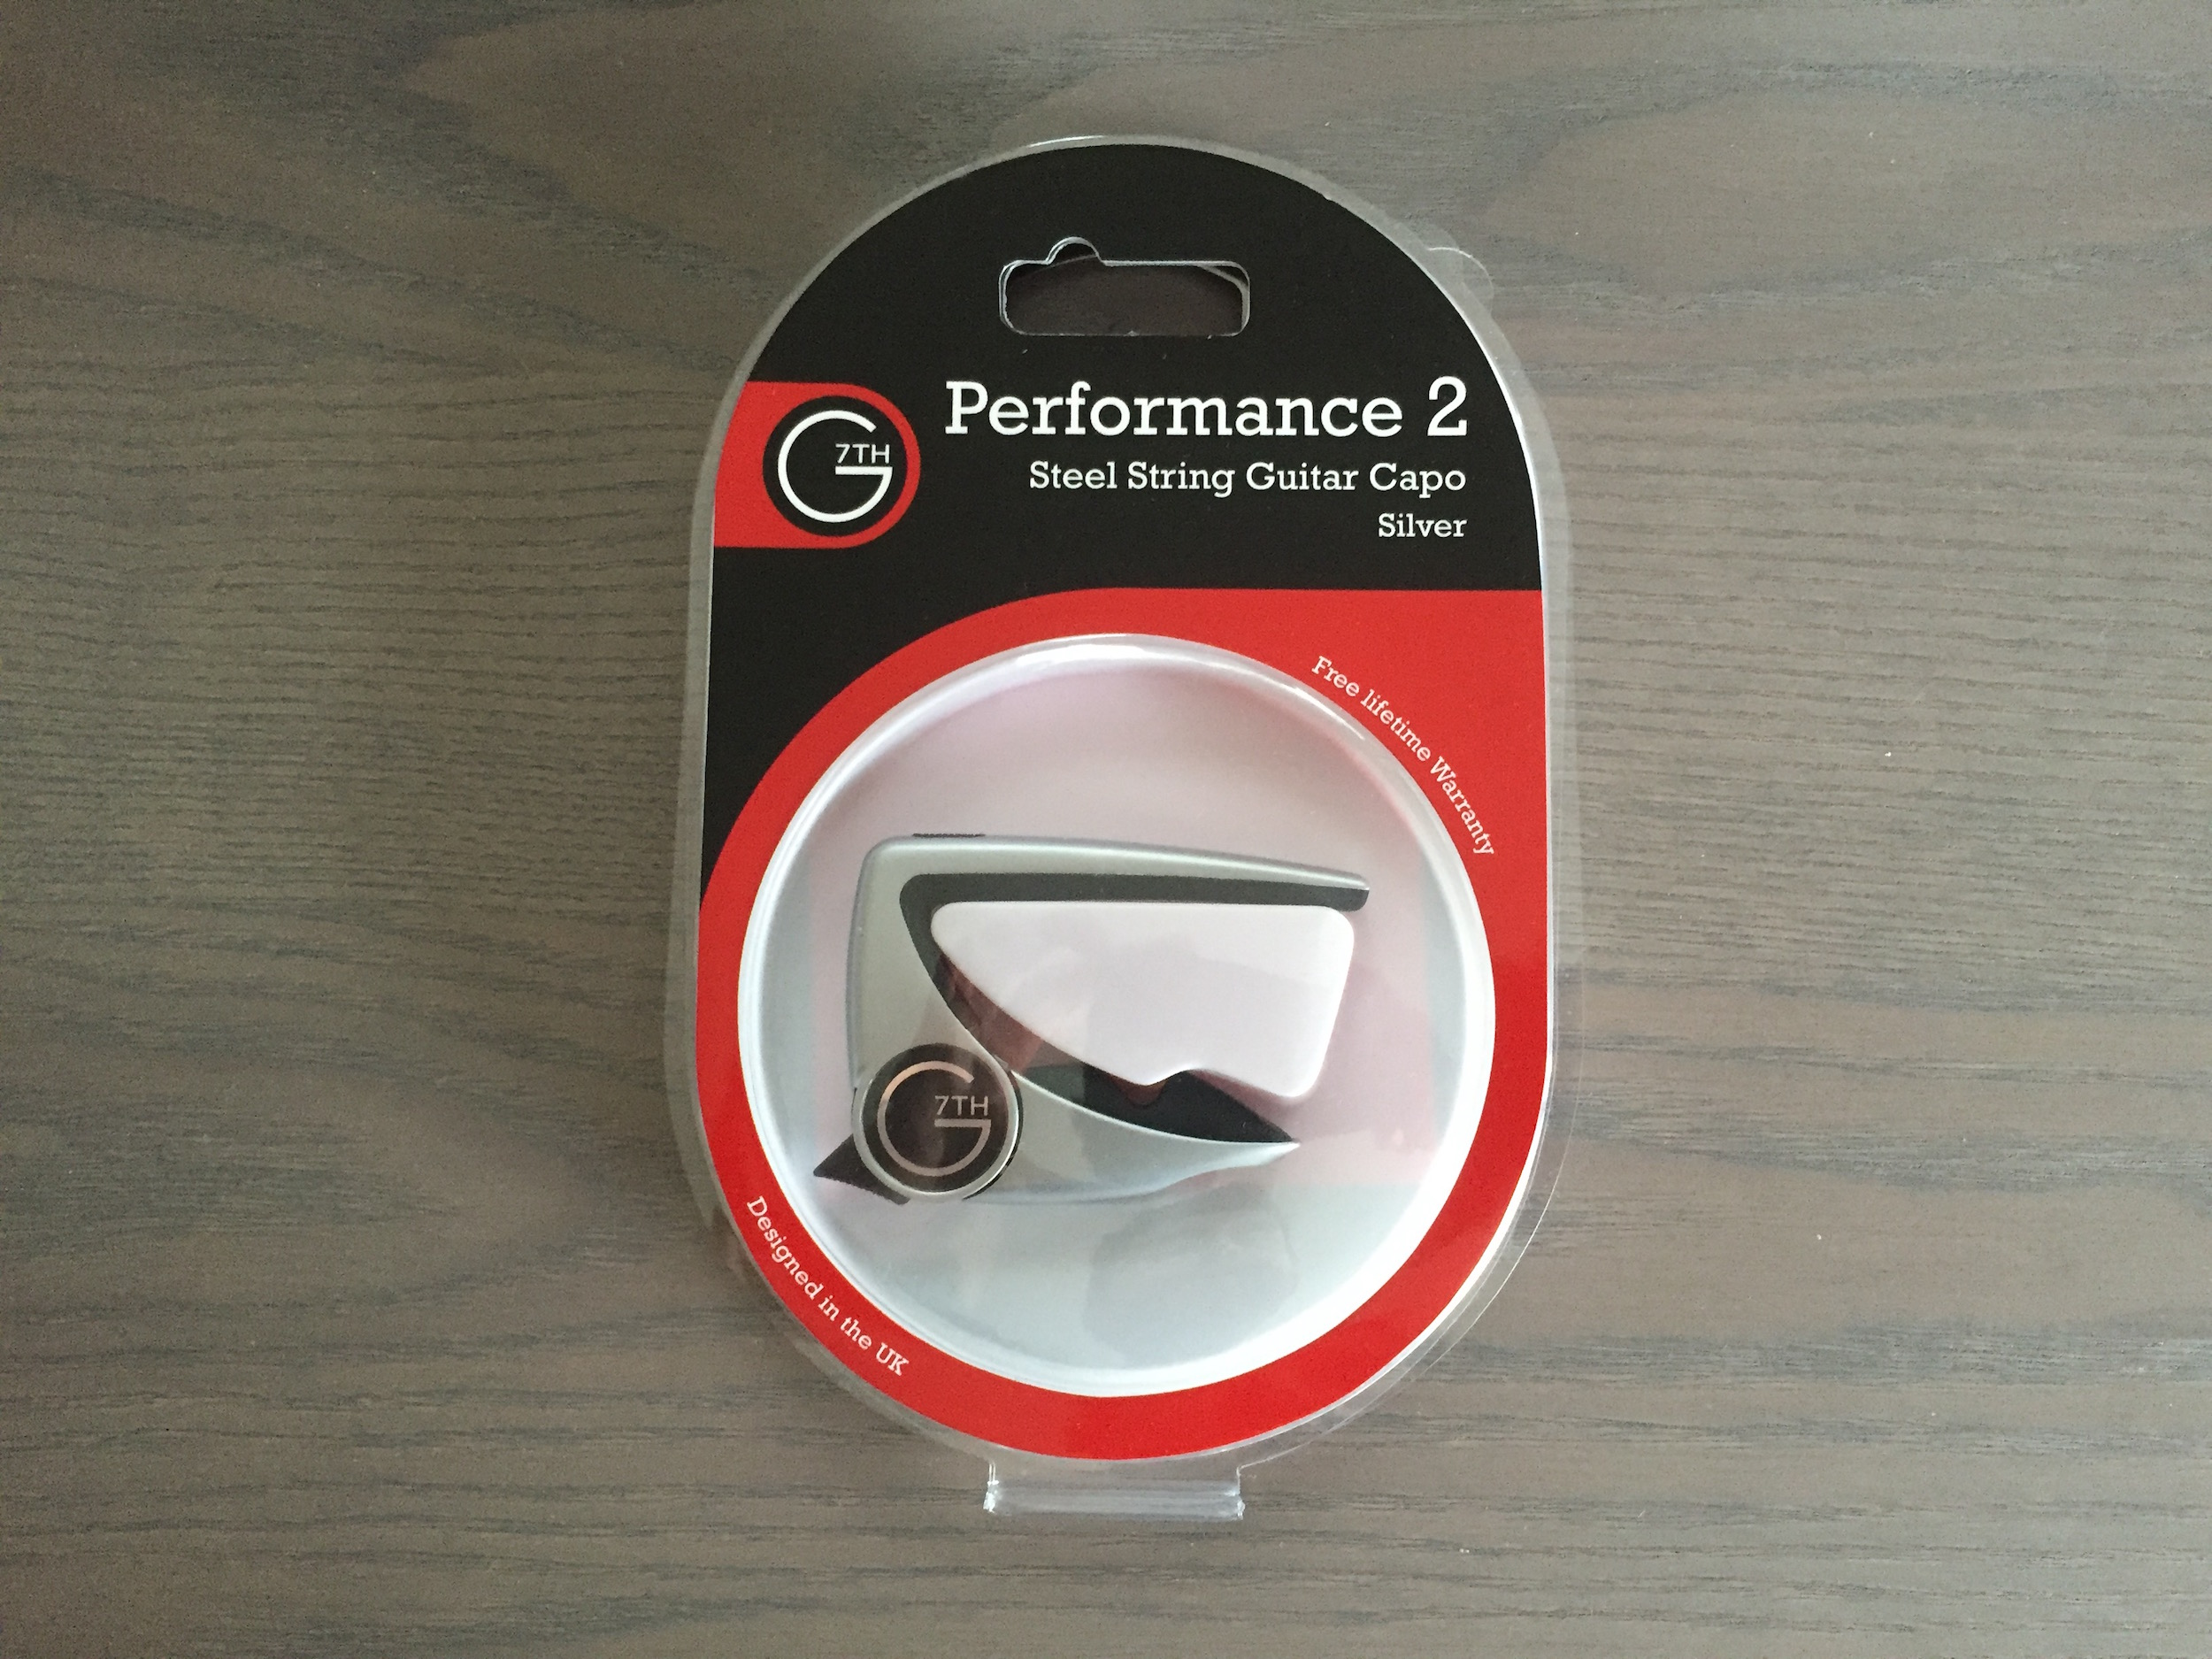 g7th performance 2 capo front packaging